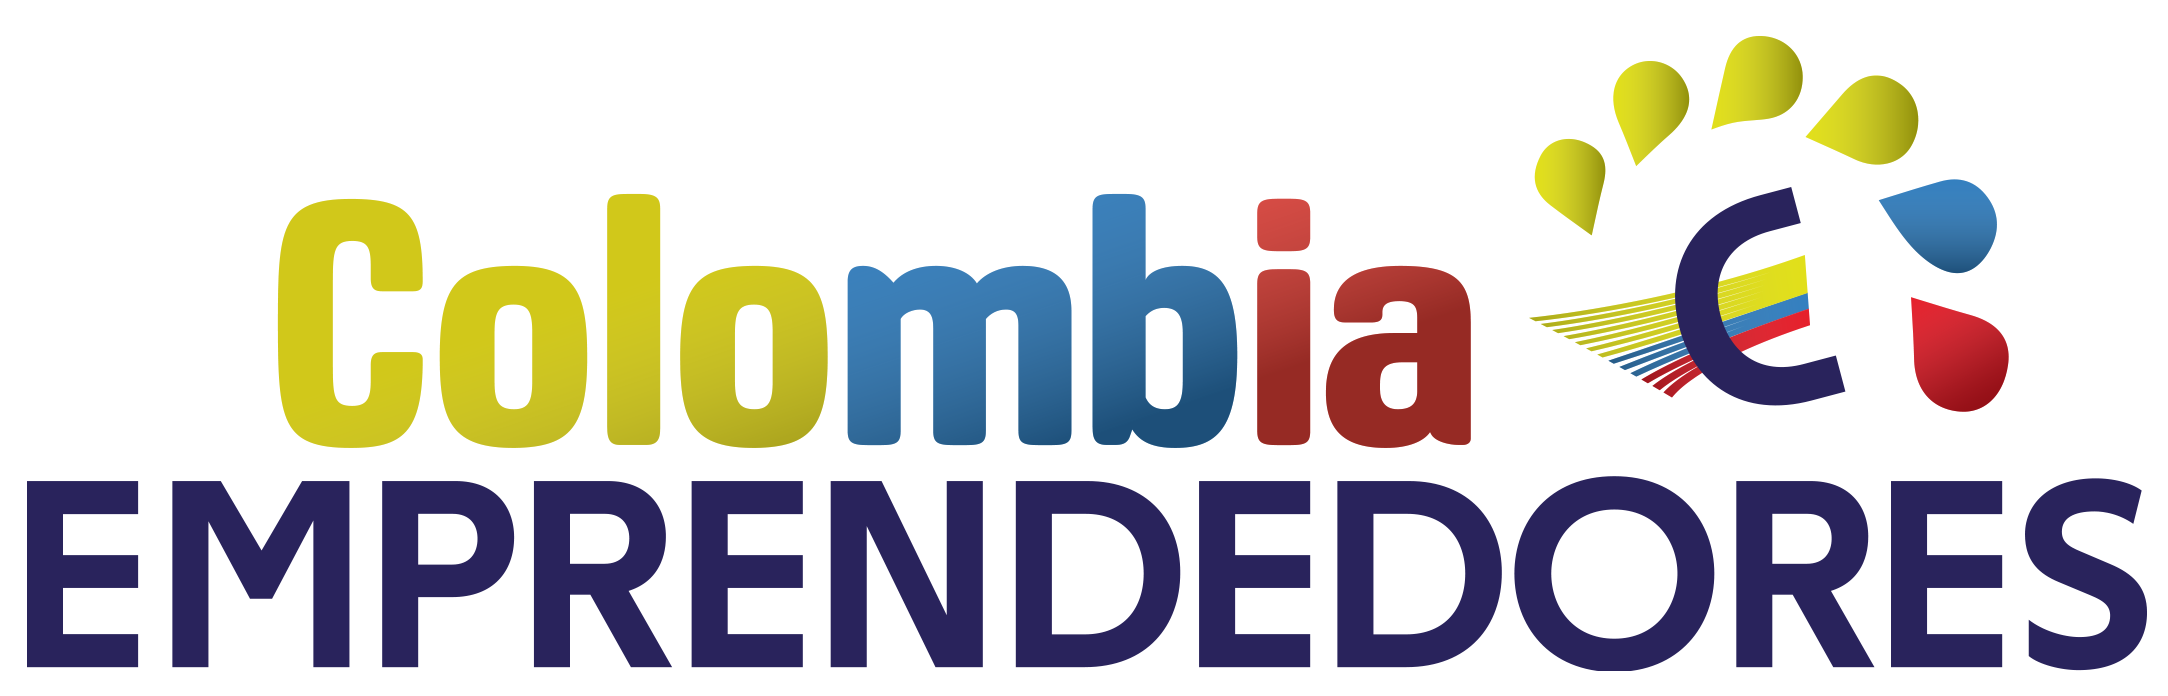 colombiaemprendedores.com